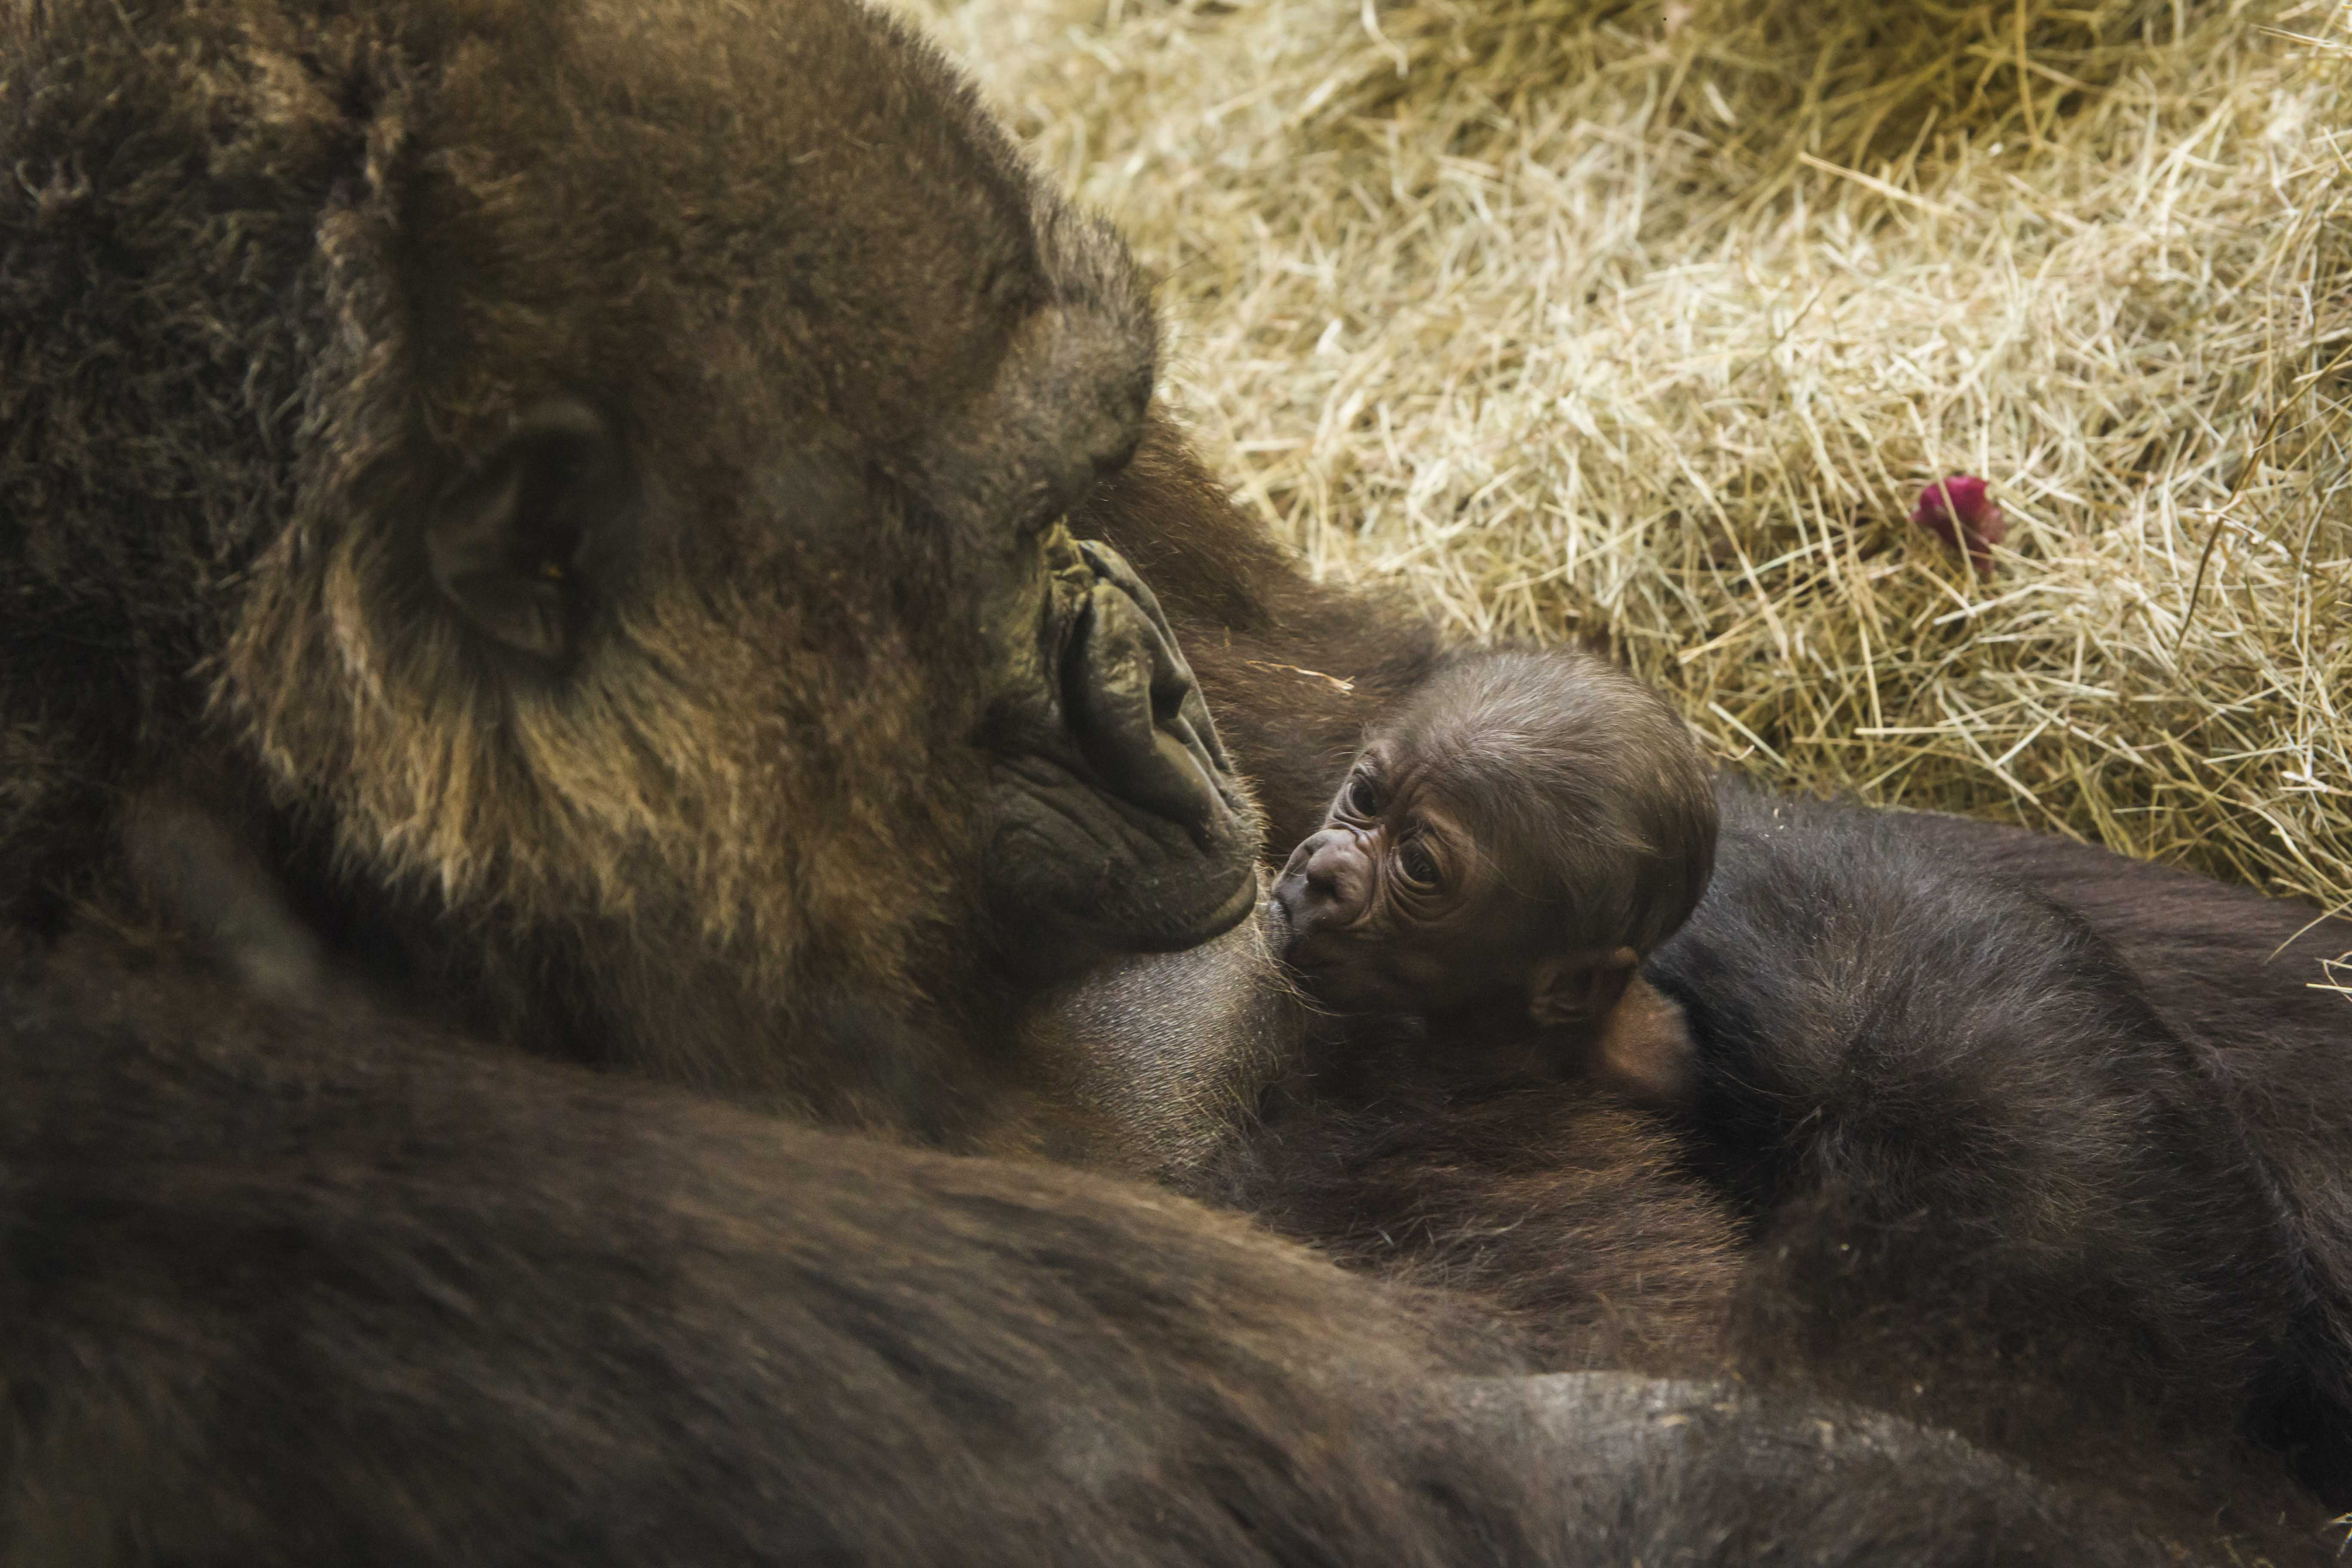 Busch Gardens Tampa Welcomes Baby Gorilla - On the Go in MCO